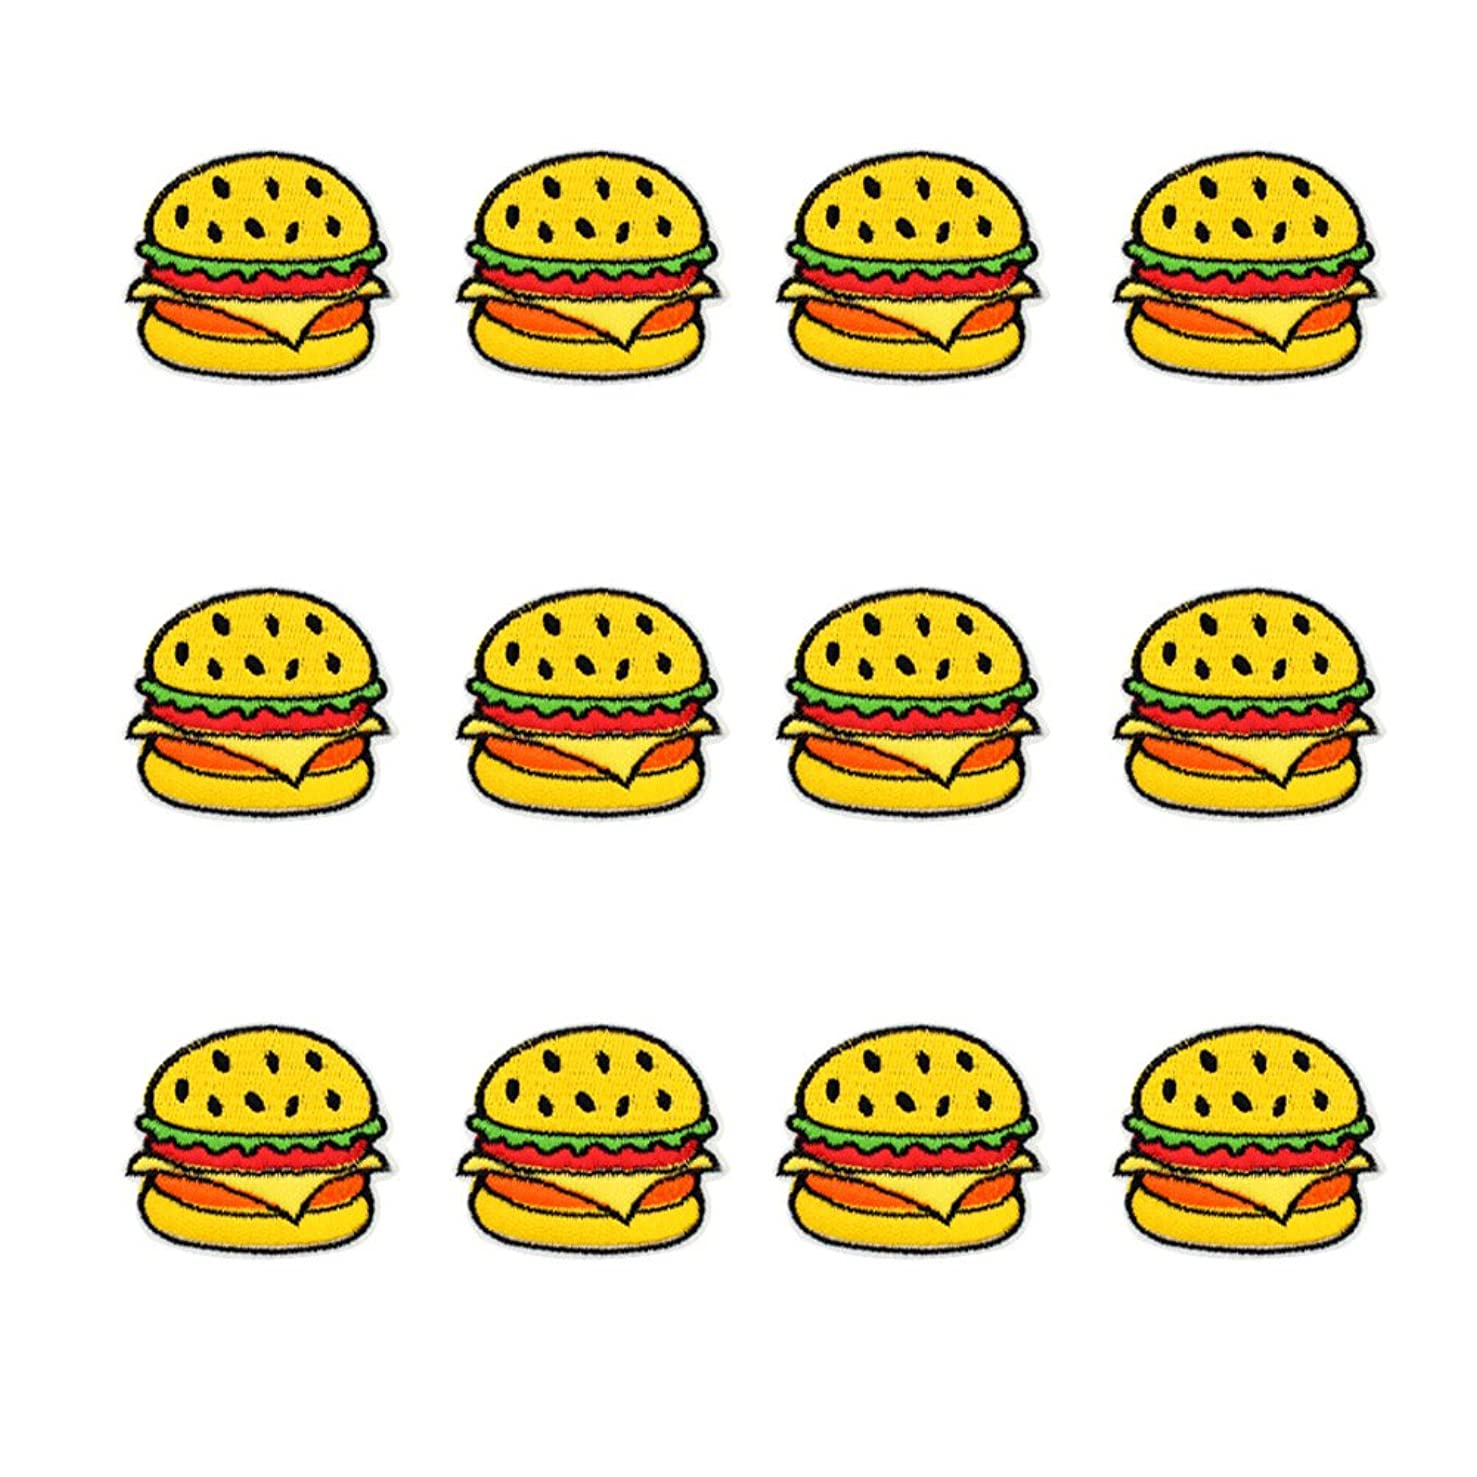 XUNHUI Embroidered Hamburger Patch for Clothing Iron on Sew Applique for Jackets Jeans Patch for Clothes Bags Sticker Badge 12Pieces